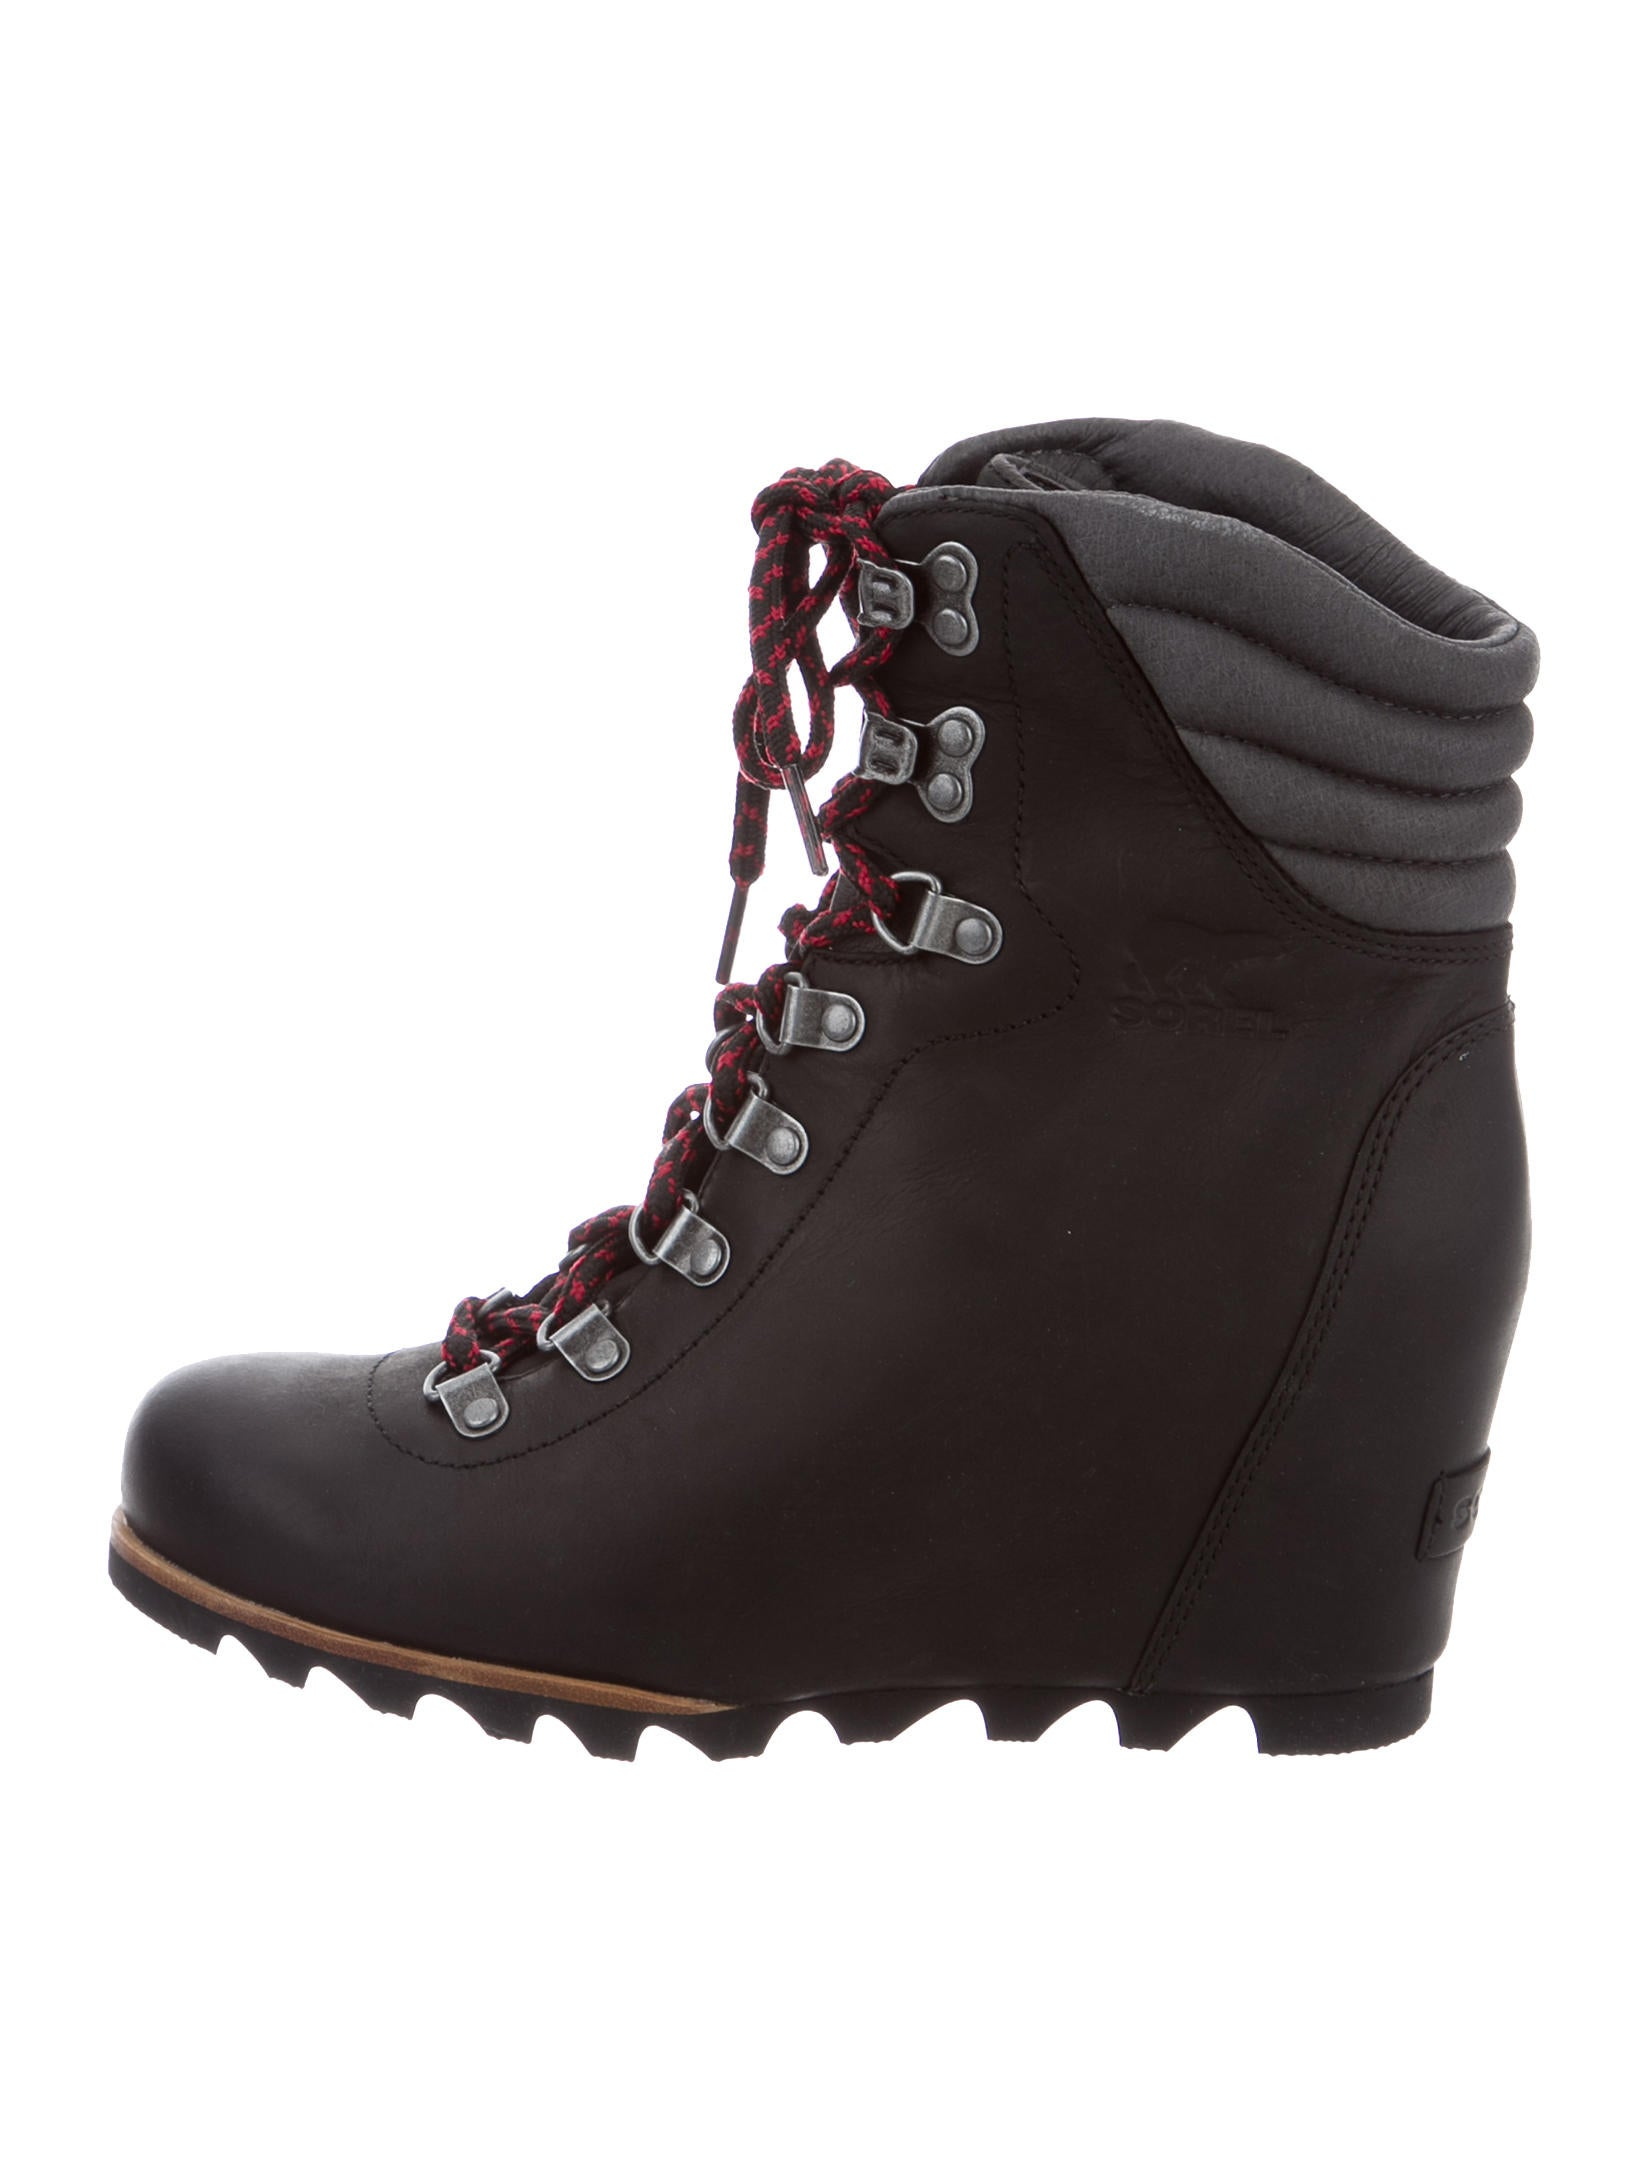 Find great deals on eBay for lace up wedge boot. Shop with confidence.